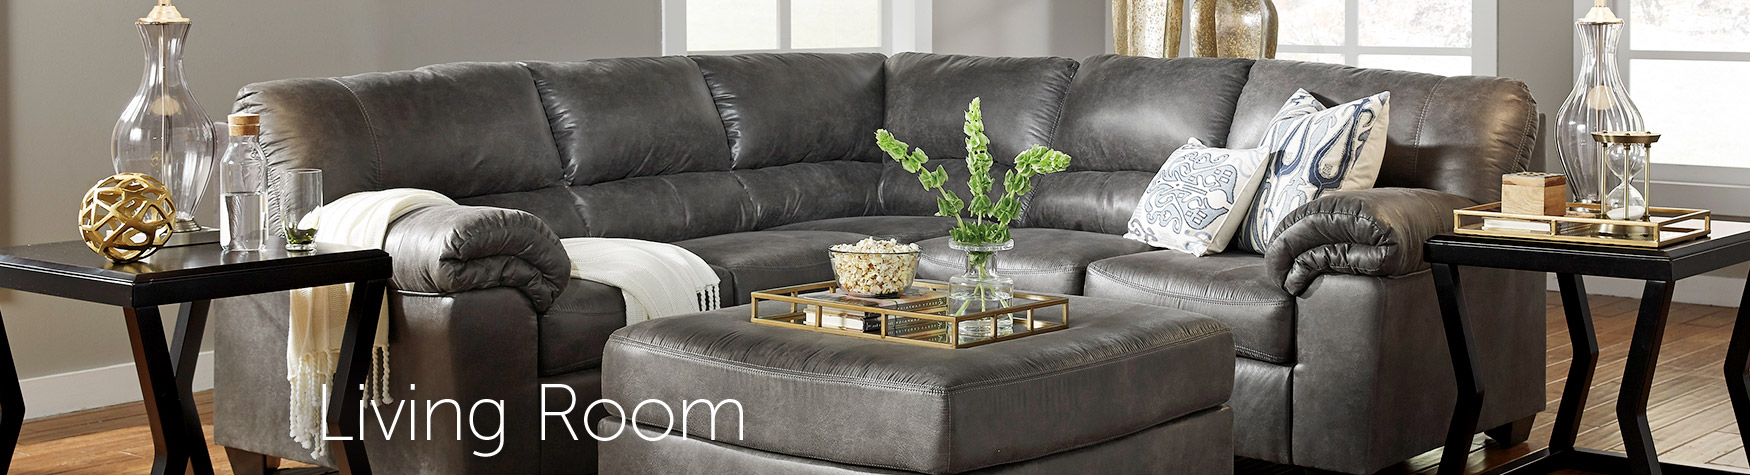 Affordable comfortable living room furniture for sale - Cheap comfortable living room chairs ...